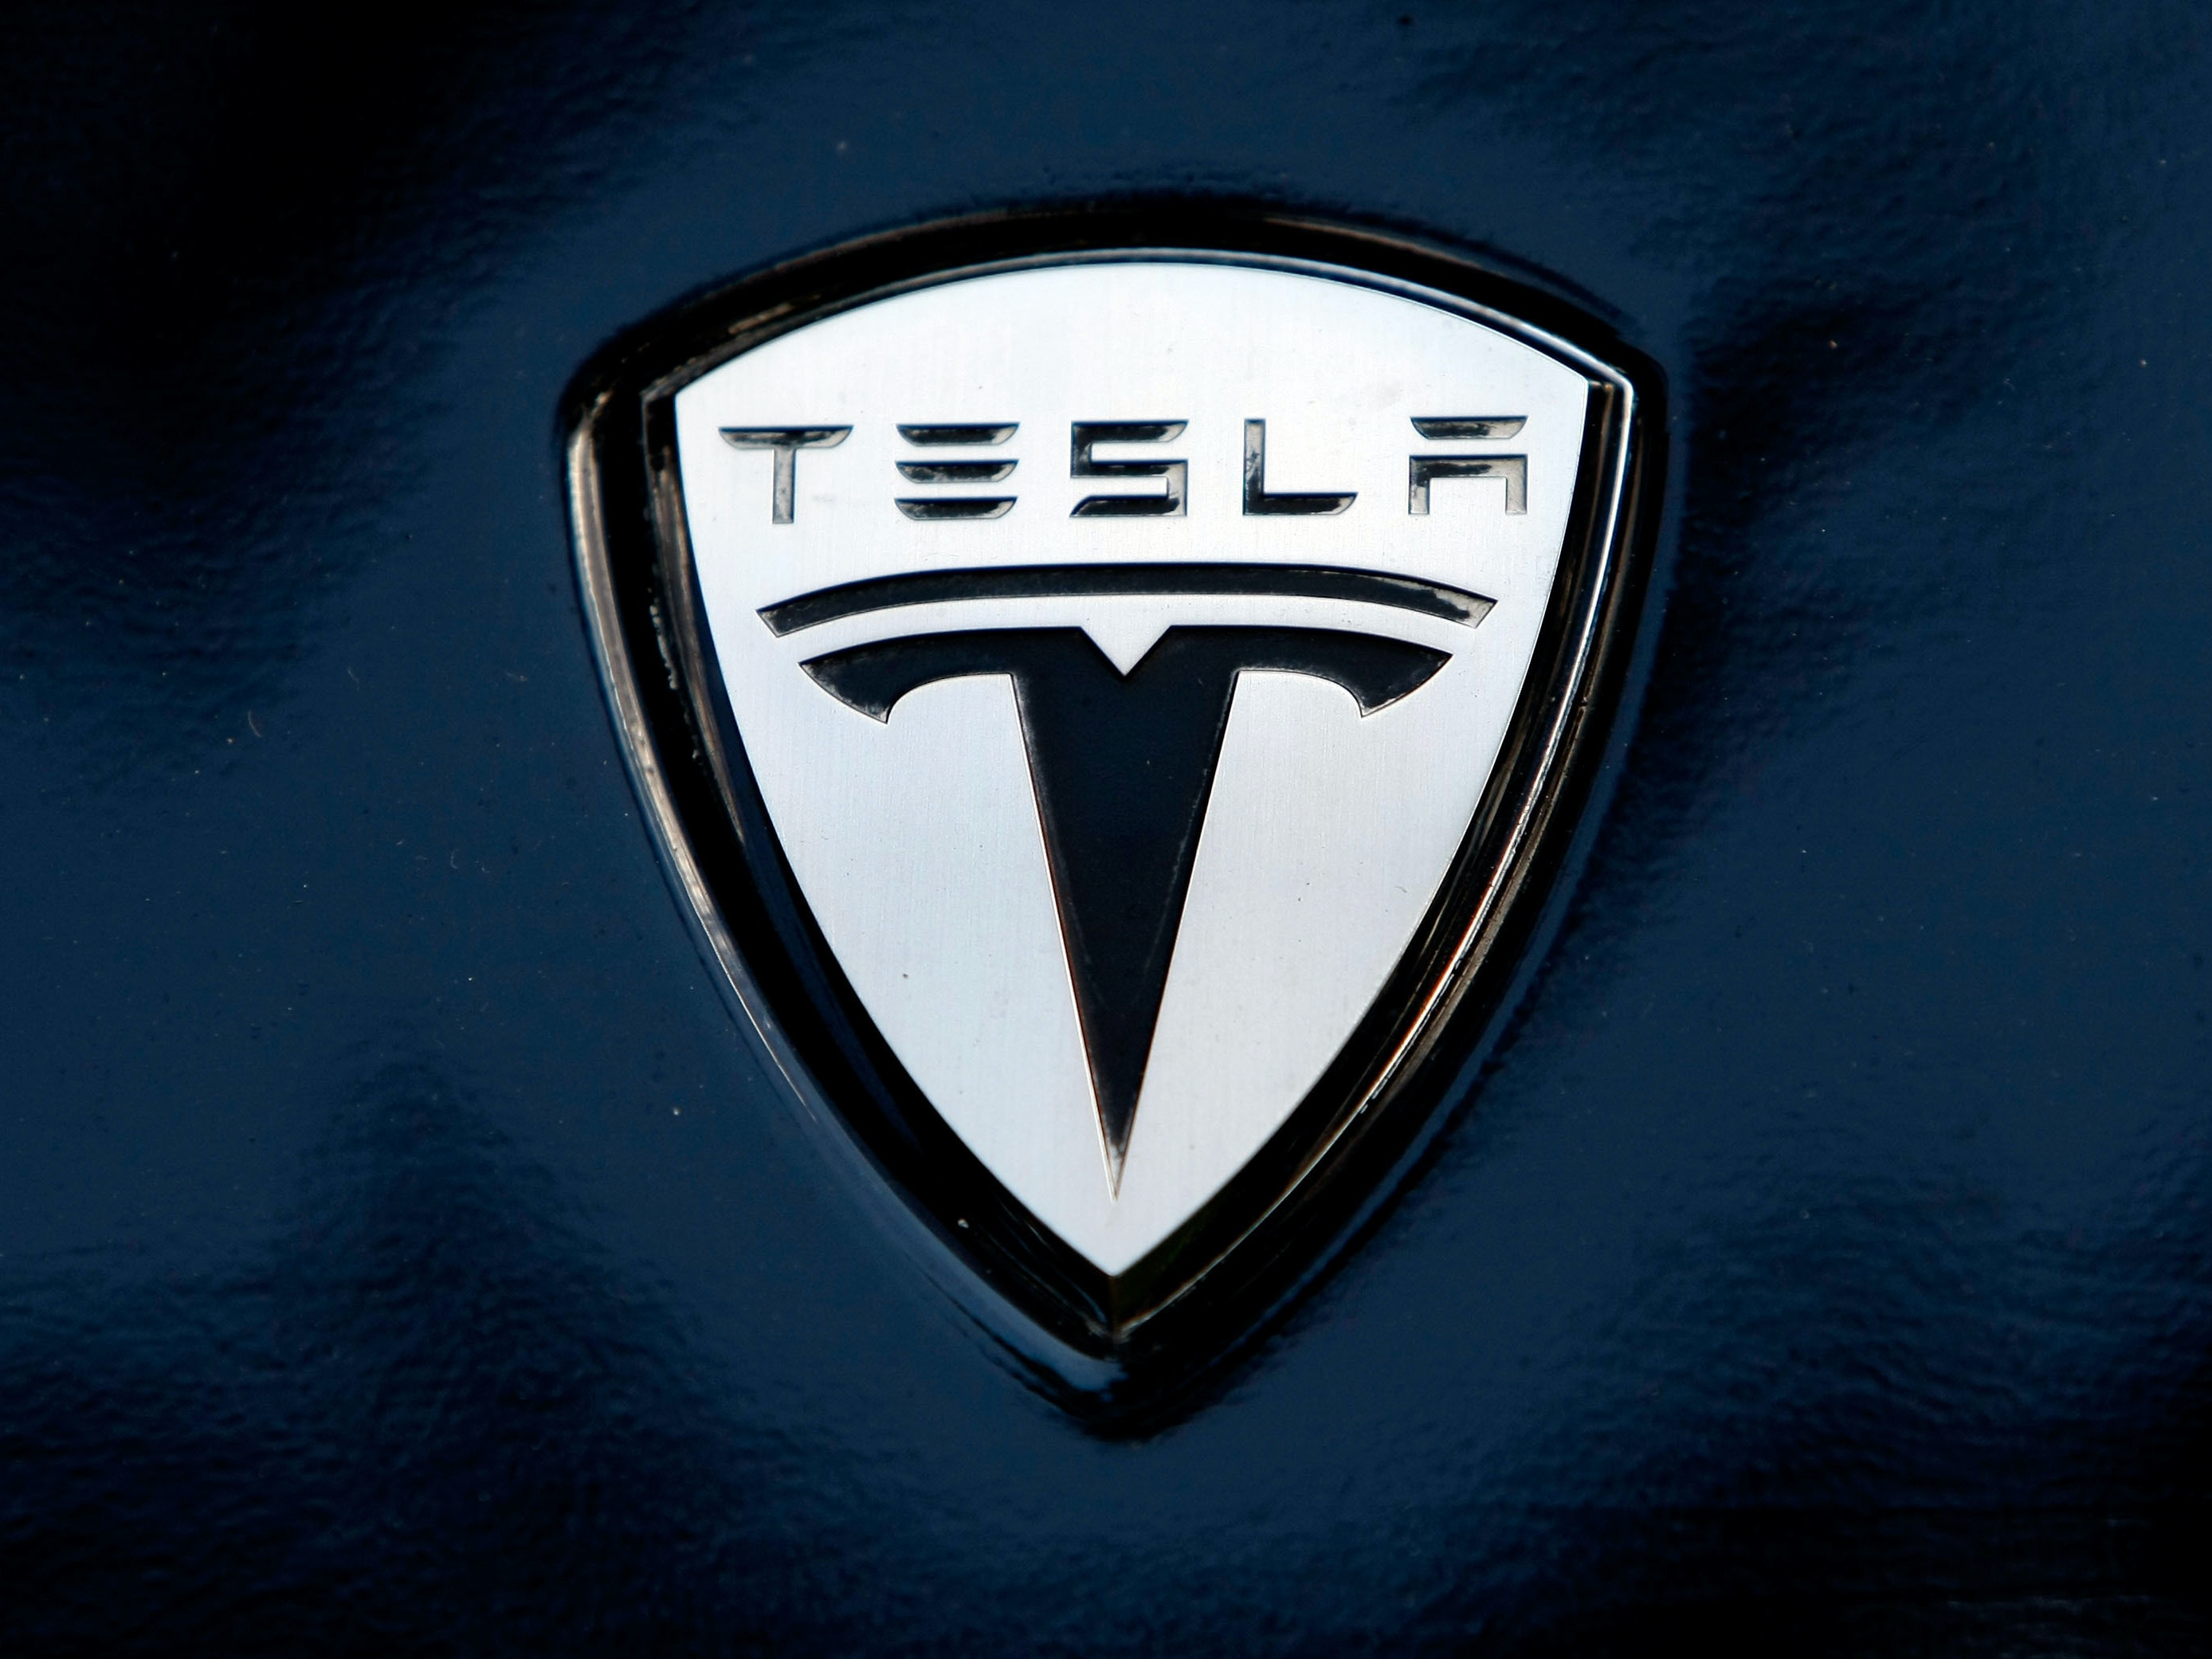 Elon Musk Just Revealed What the Tesla Logo Represents